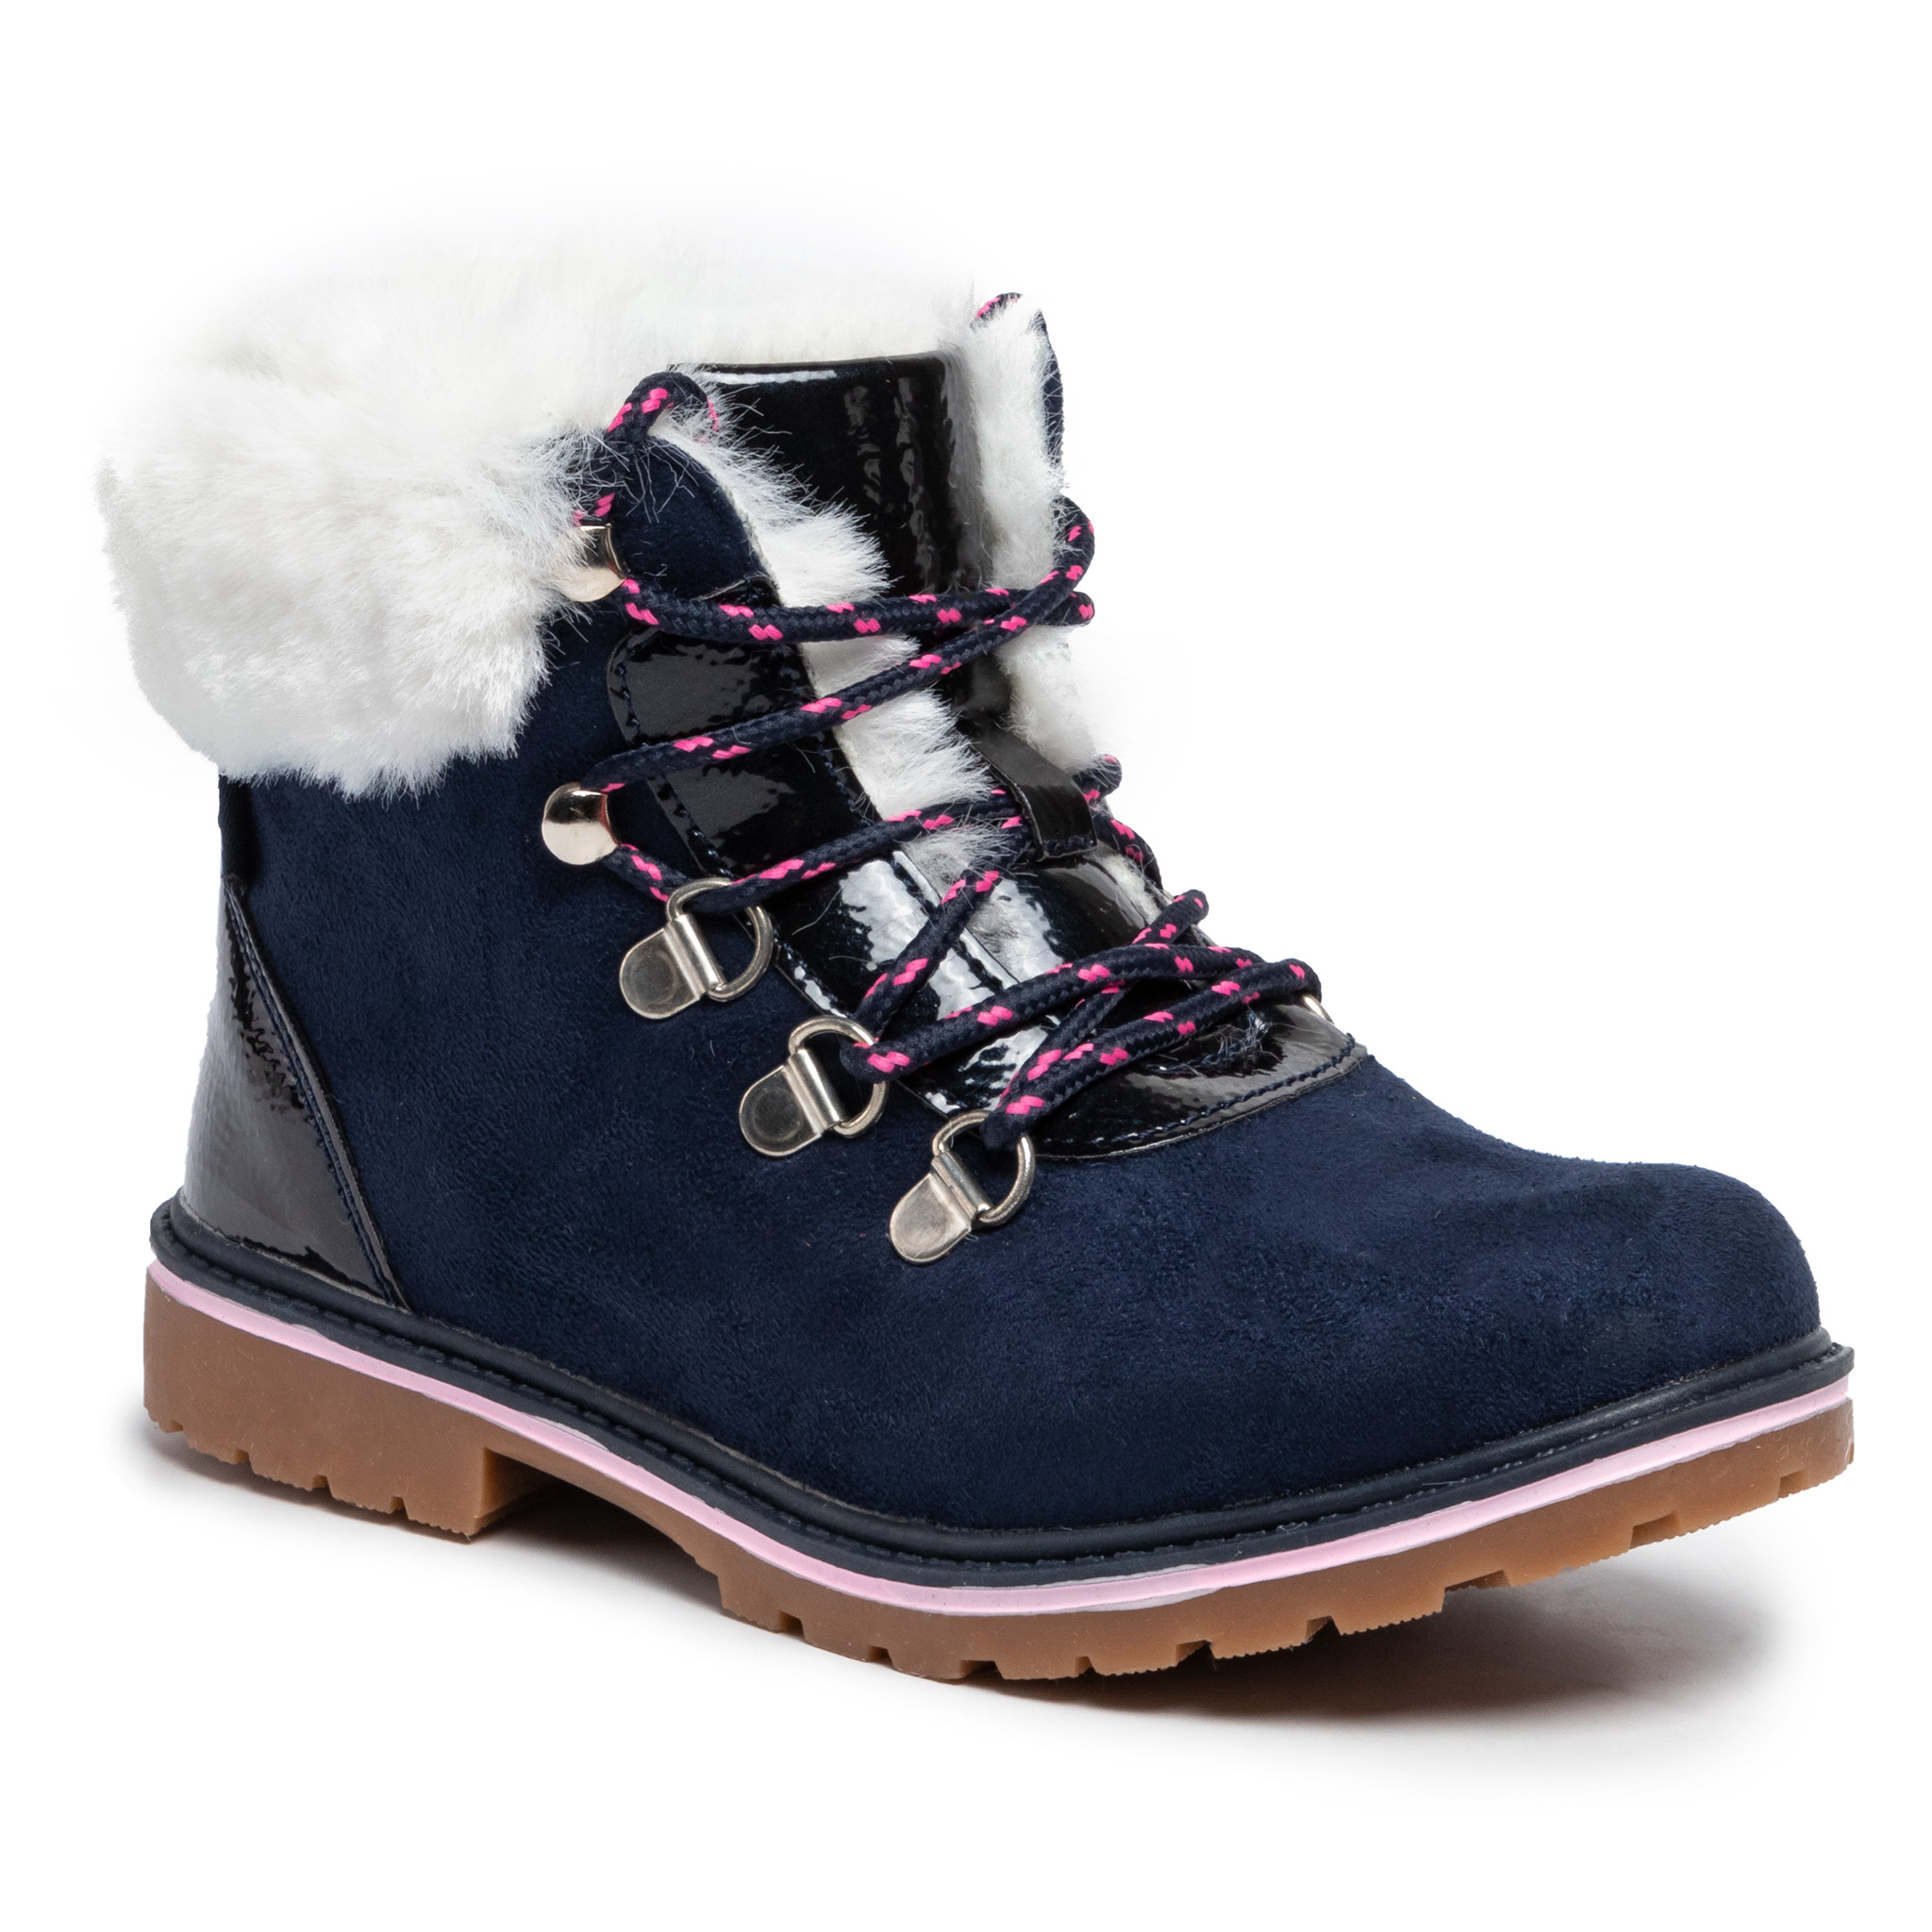 Trappers XTI - 56996 Navy